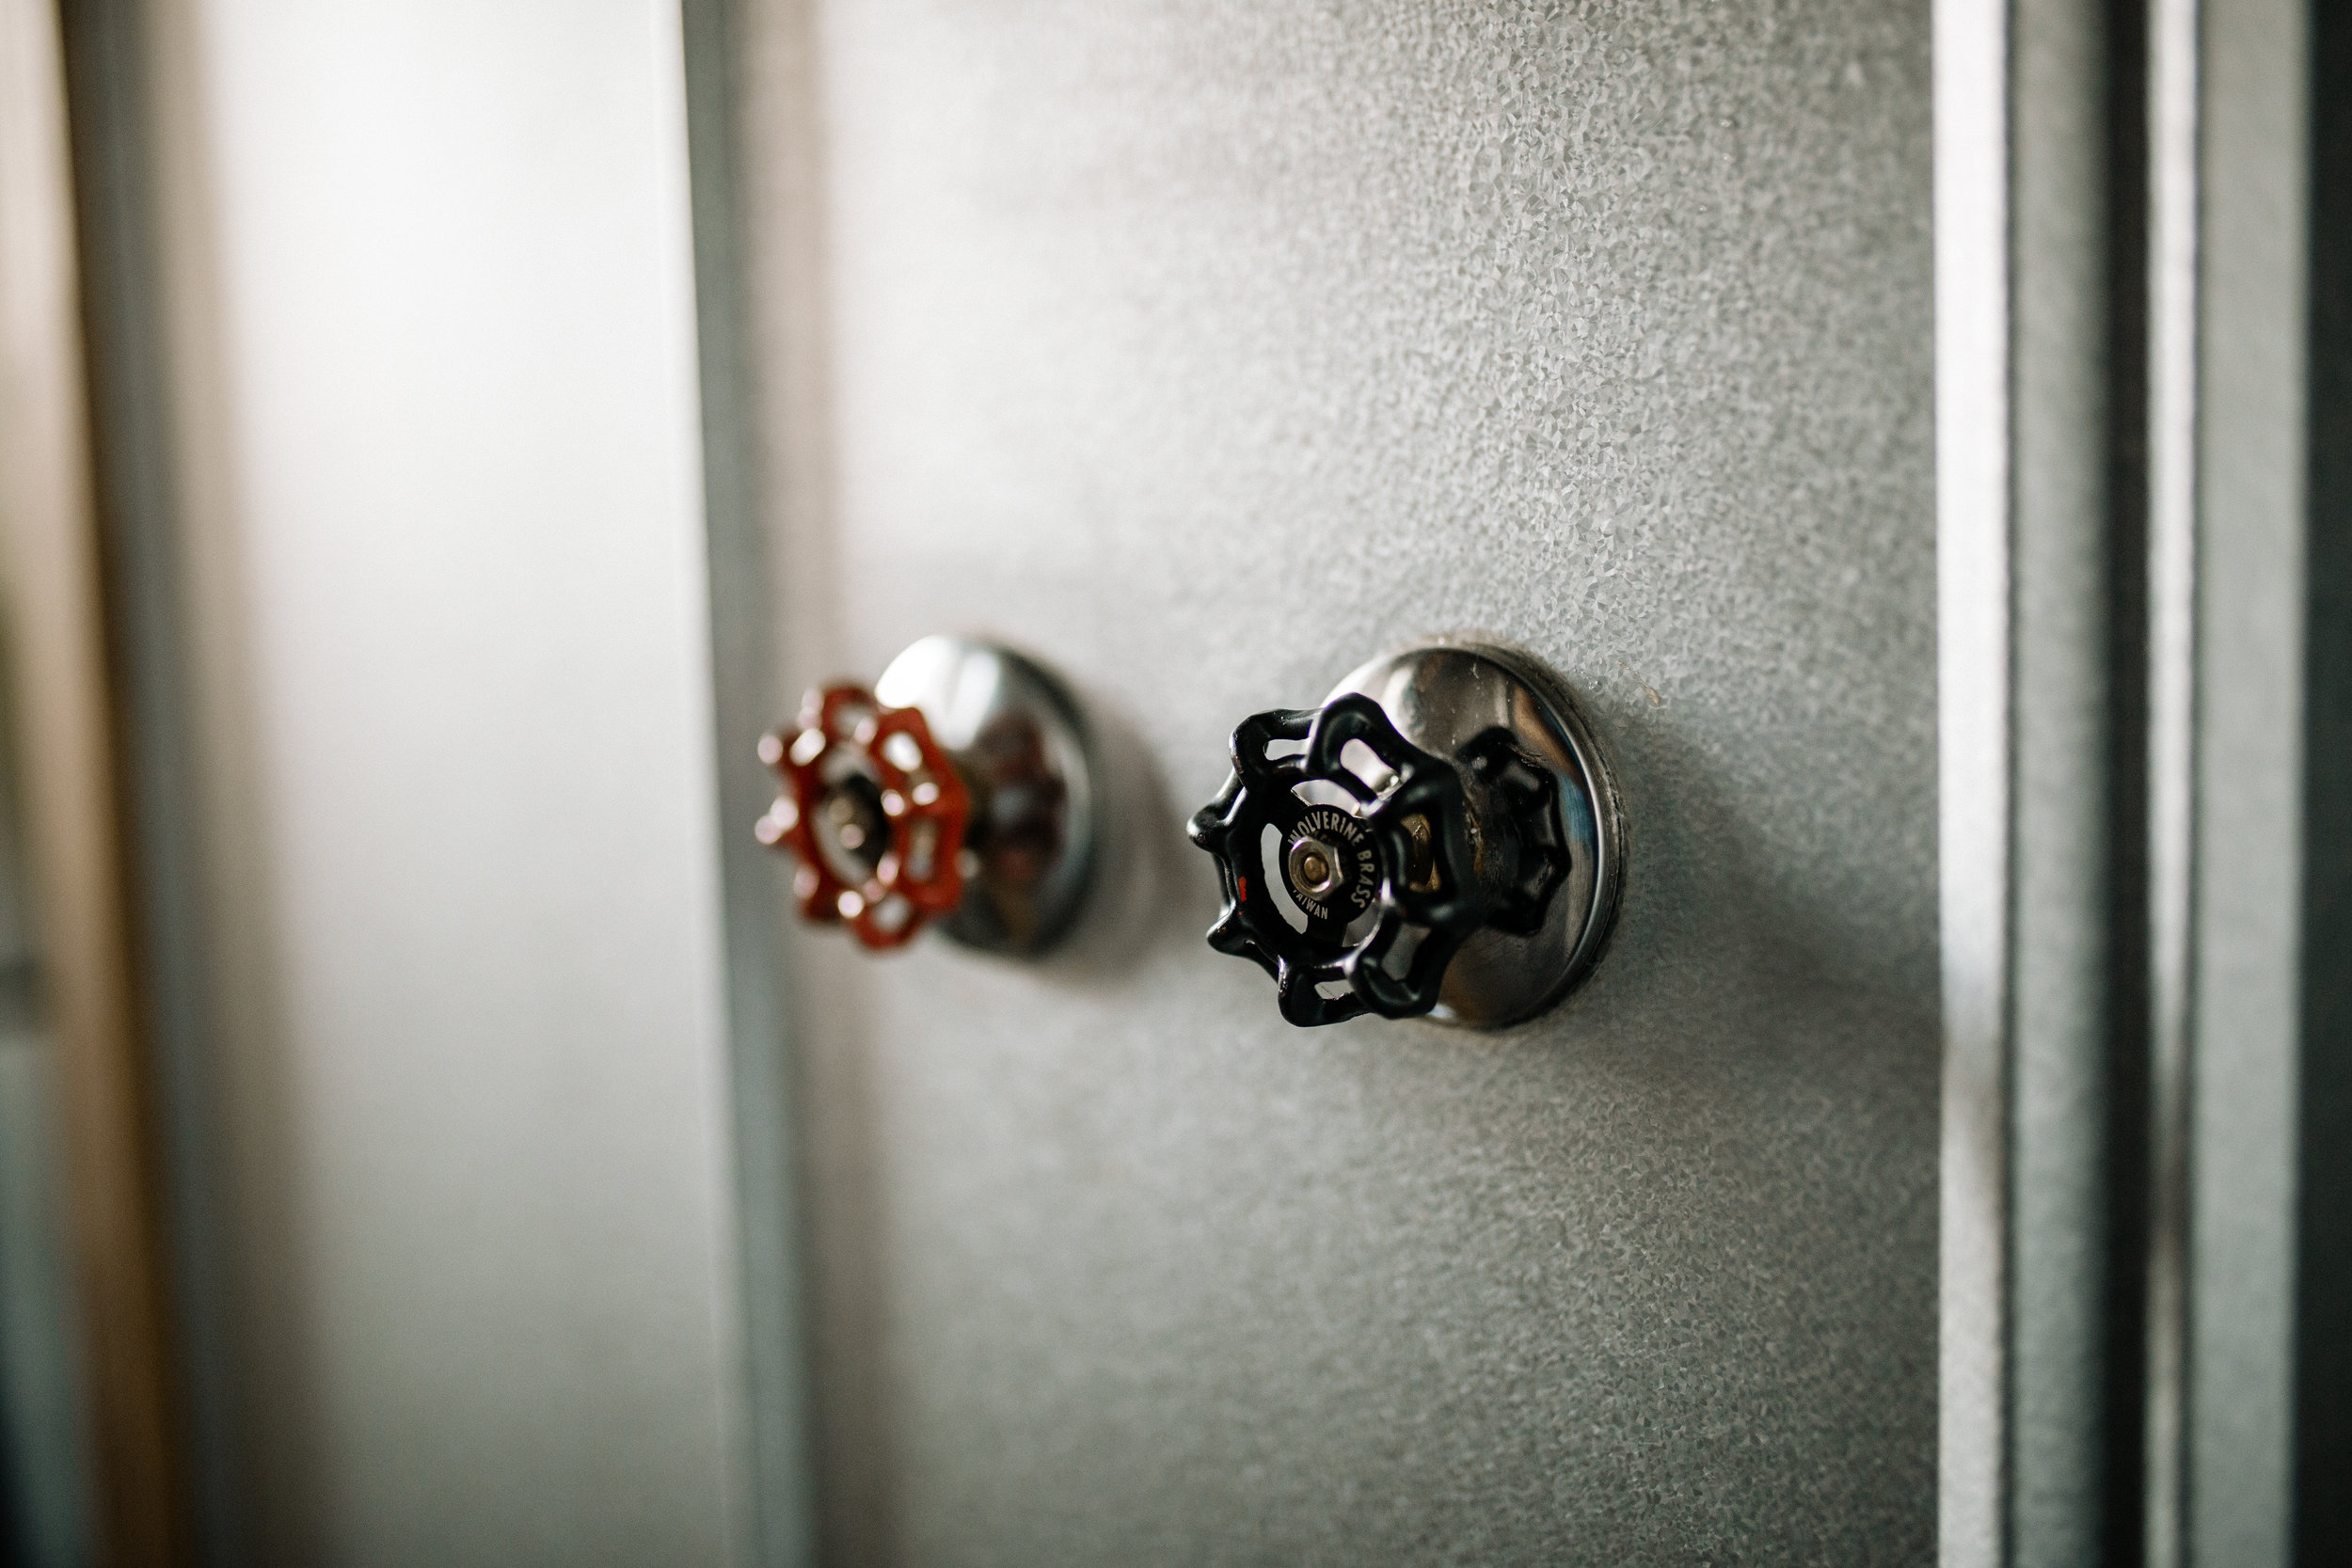 The Rook by Wind River Tiny Homes - Industrial boiler valve shower knobs.